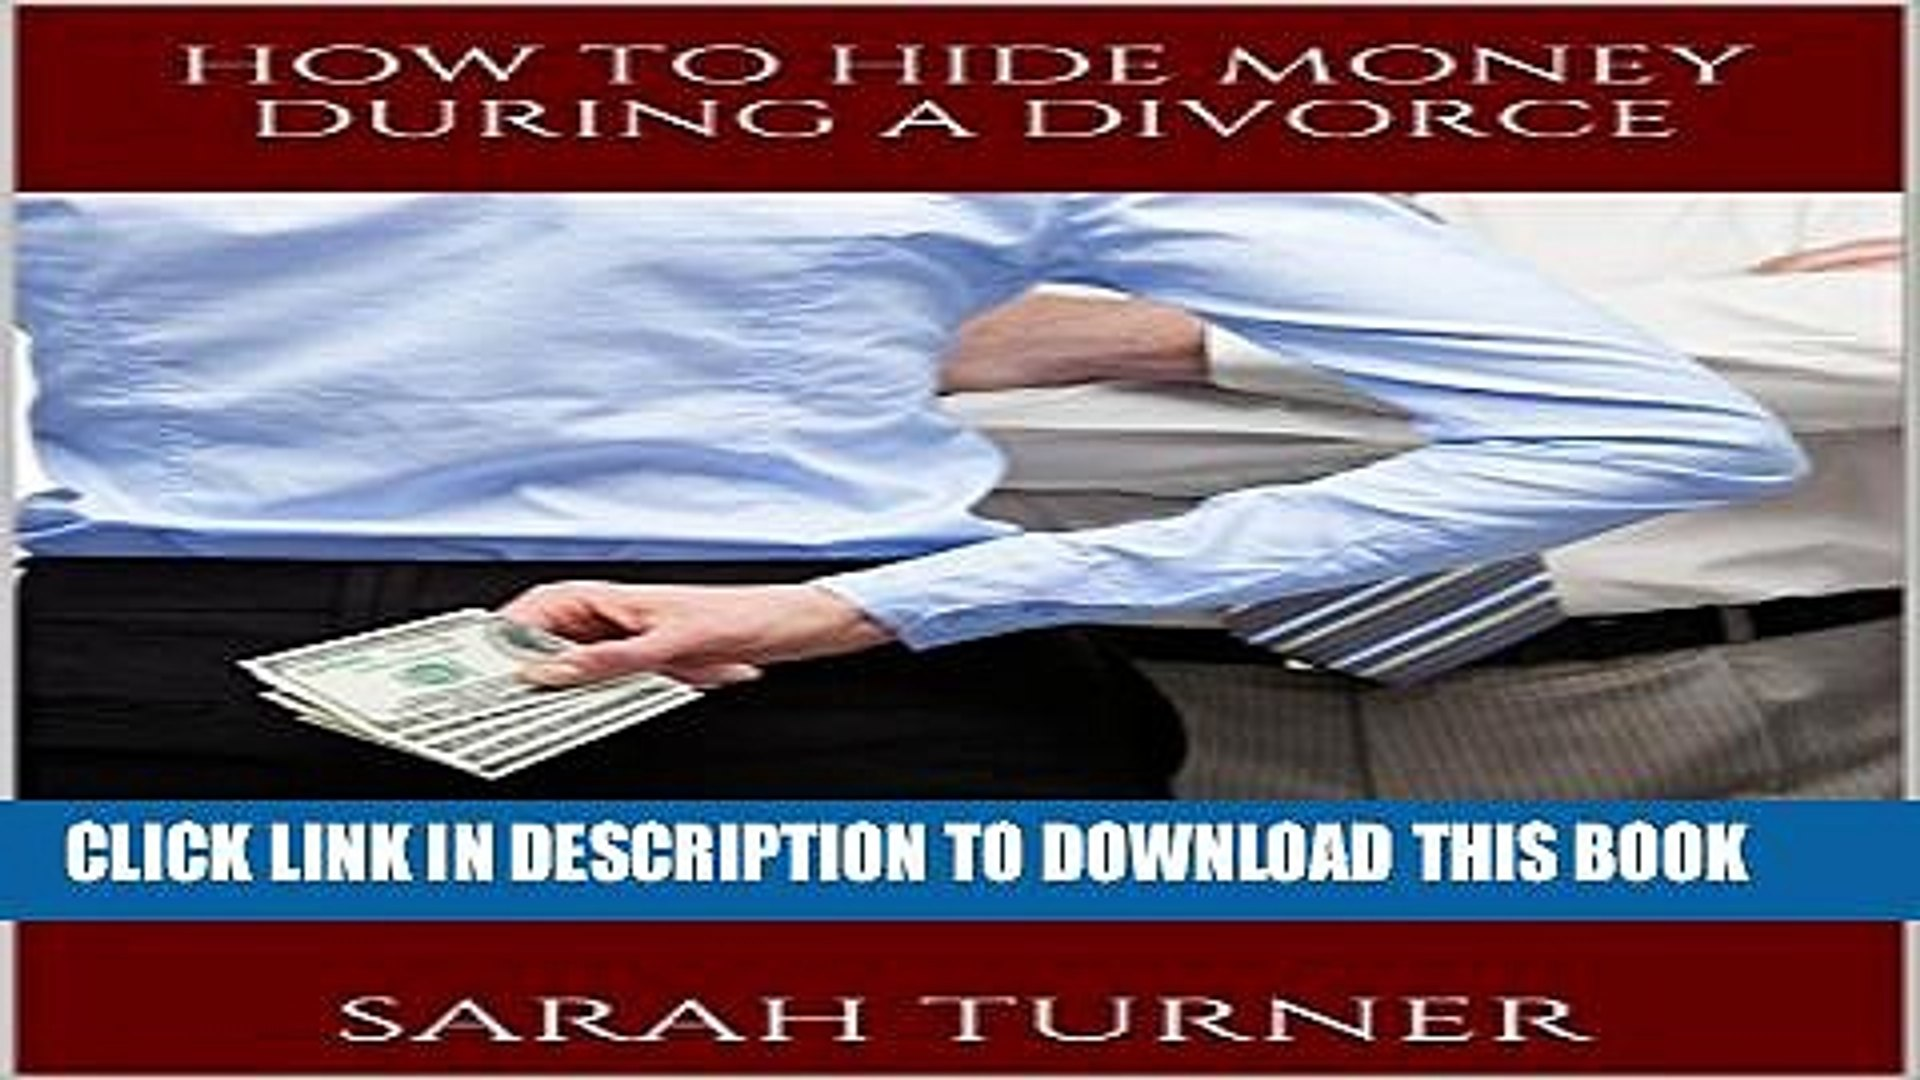 [PDF] How to Hide Money During a Divorce: How to Hide Assets, How to Hide Money From Husband, How